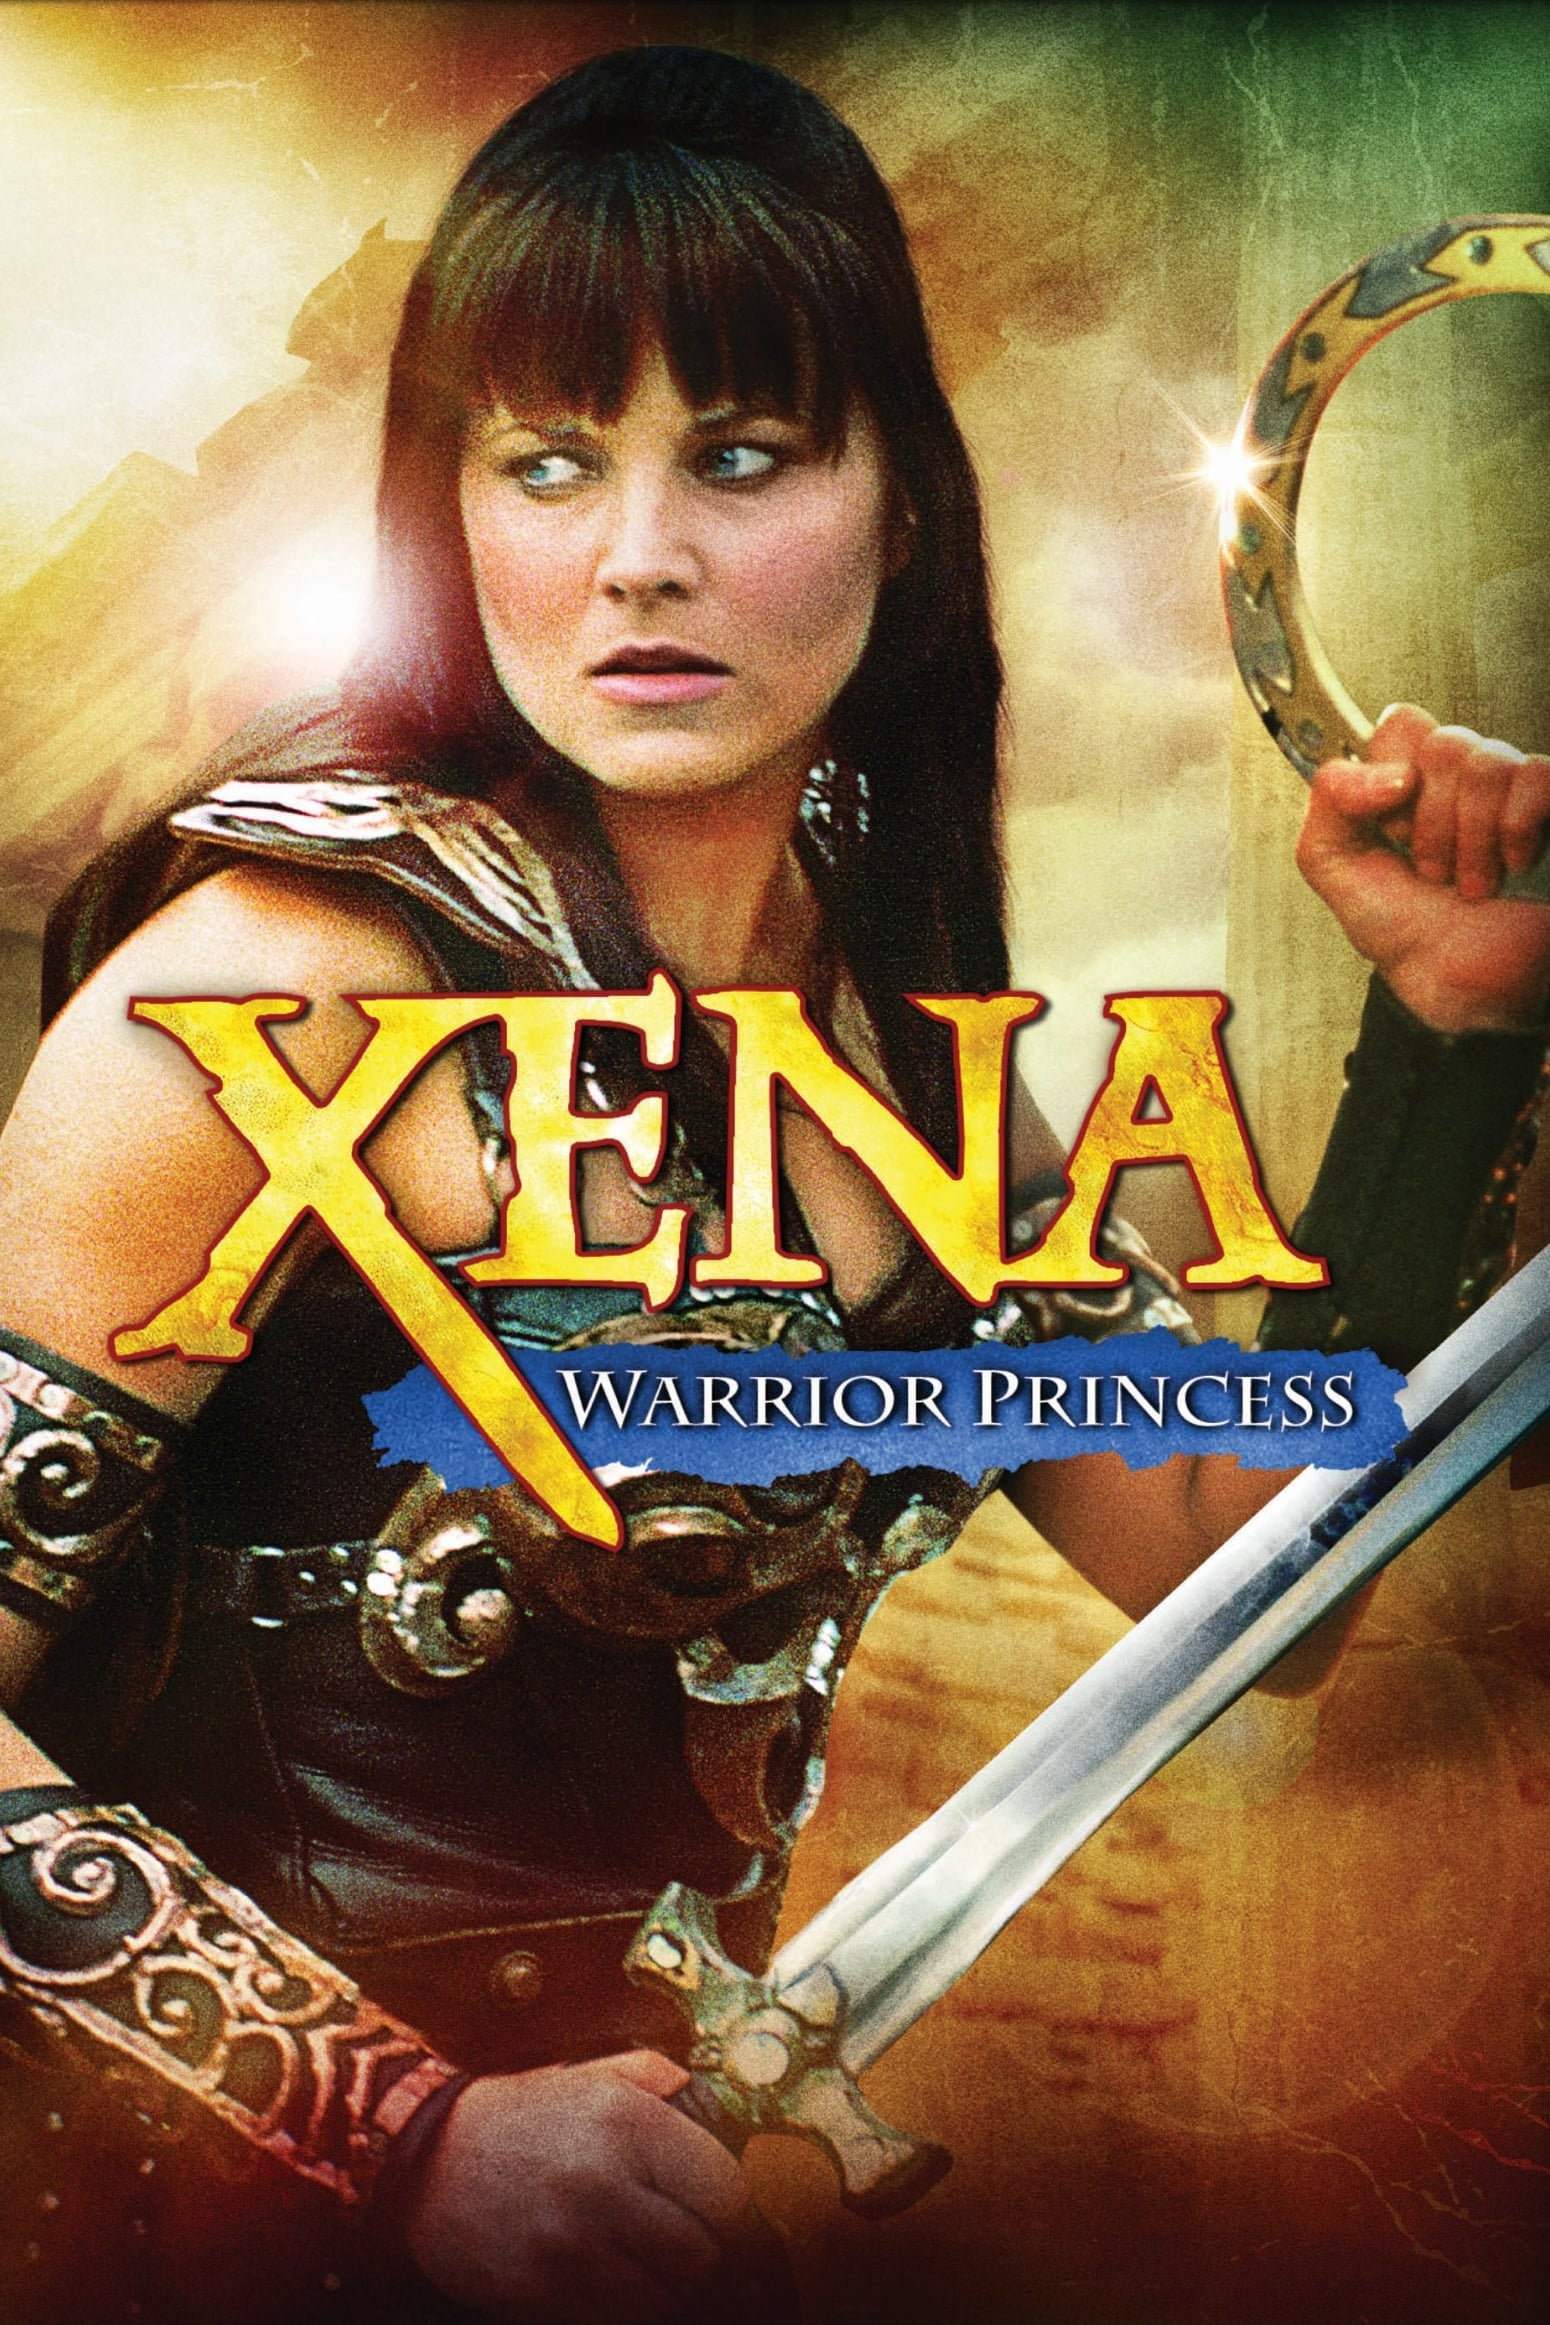 Xena: Warrior Princess (1995)